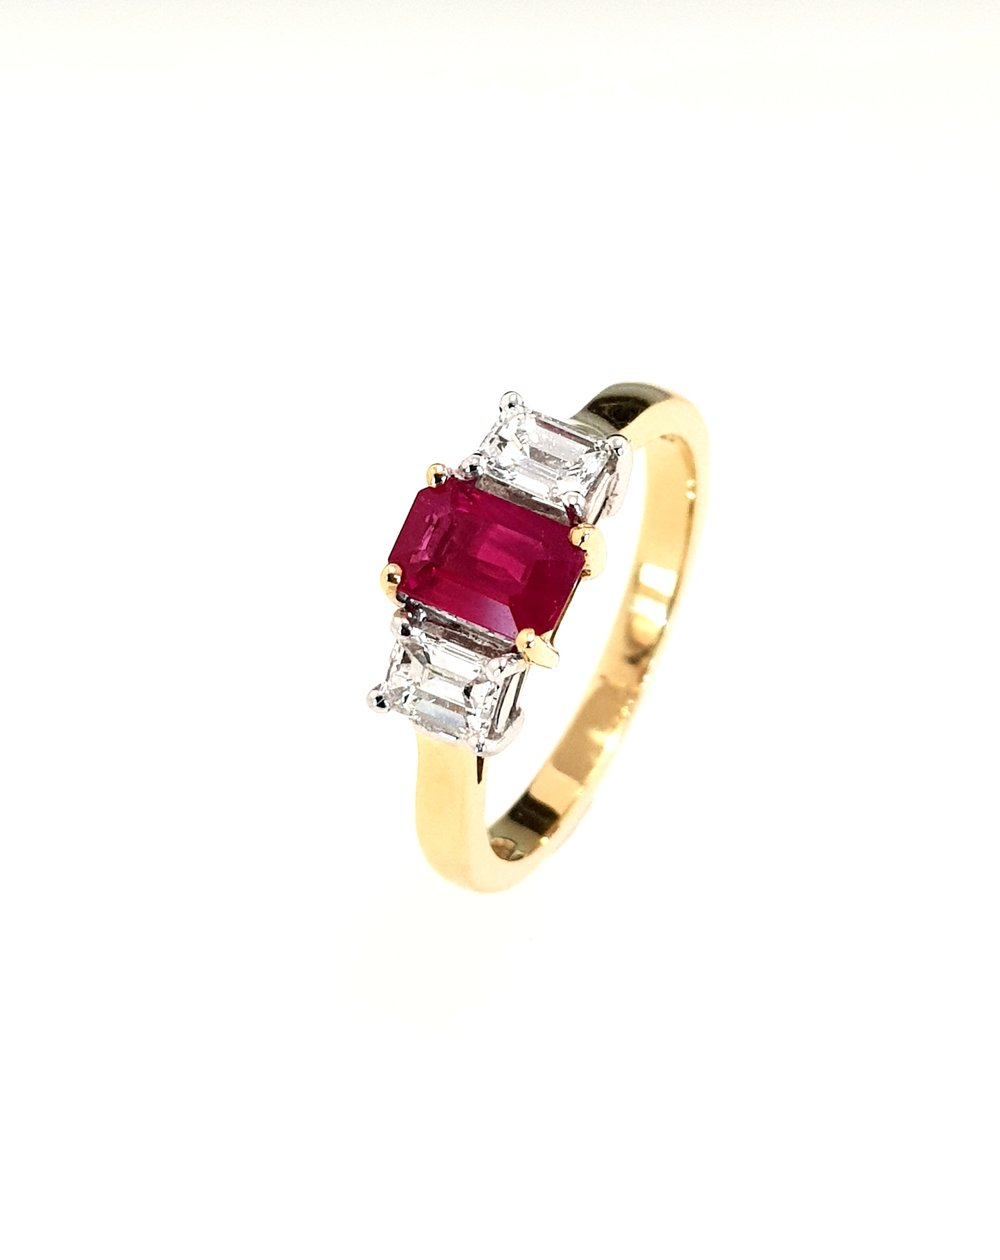 18ct Yellow Gold Ruby (.50ct) & Diamond Ring  Diamond: .40ct, G, Si1  Stock Code: N8511  £2100